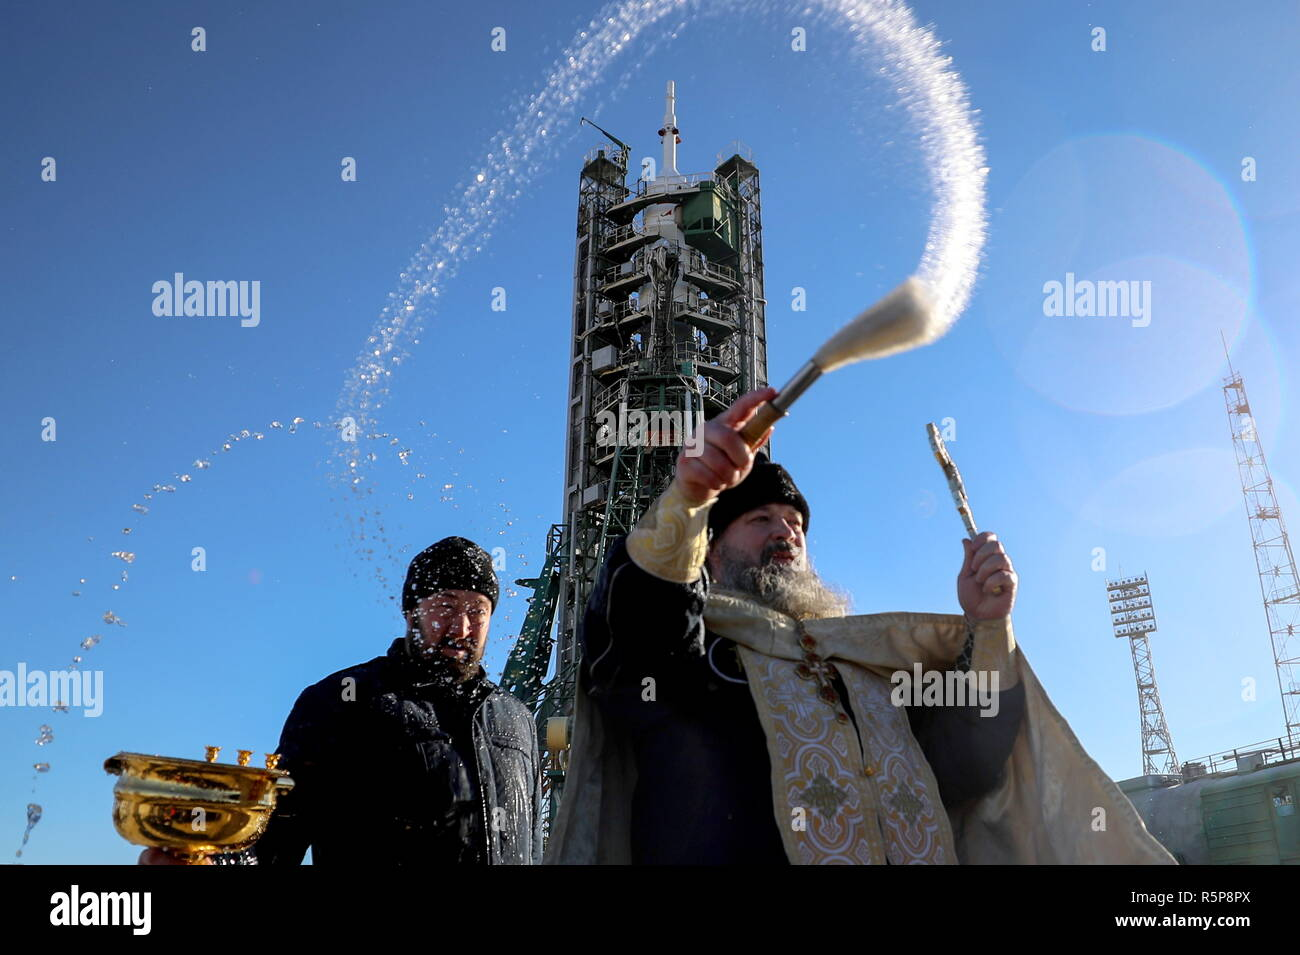 Kazakhstan. 02nd Dec, 2018. KAZAKHSTAN - DECEMBER 2, 2018: Russian Orthodox clergy sprinklas blessed water during the blessing of a Soyuz-FG rocket booster carrying the Soyuz MS-11 spacecraft at Baikonur Cosmodrome; the launch of the Soyuz MS-11 spacecraft is scheduled for December 3, 2018, 14:31 Moscow time. Sergei Savostyanov/TASS Credit: ITAR-TASS News Agency/Alamy Live News - Stock Image